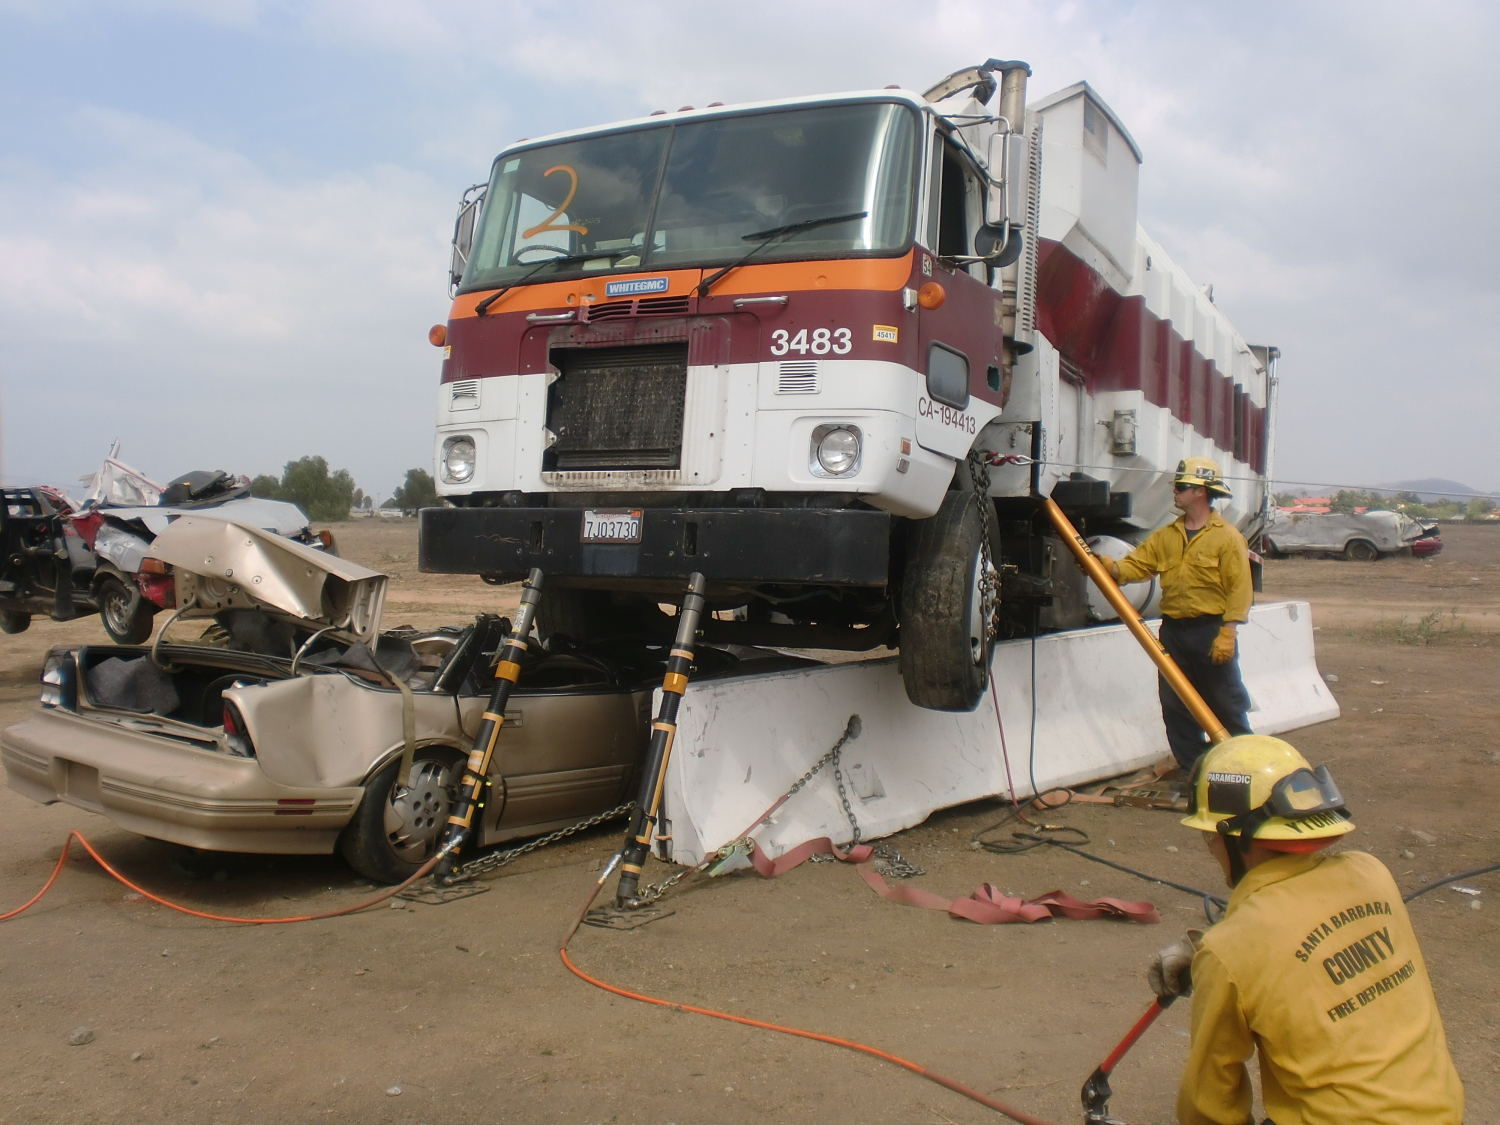 Tools To Stabilize The Rescue Scene